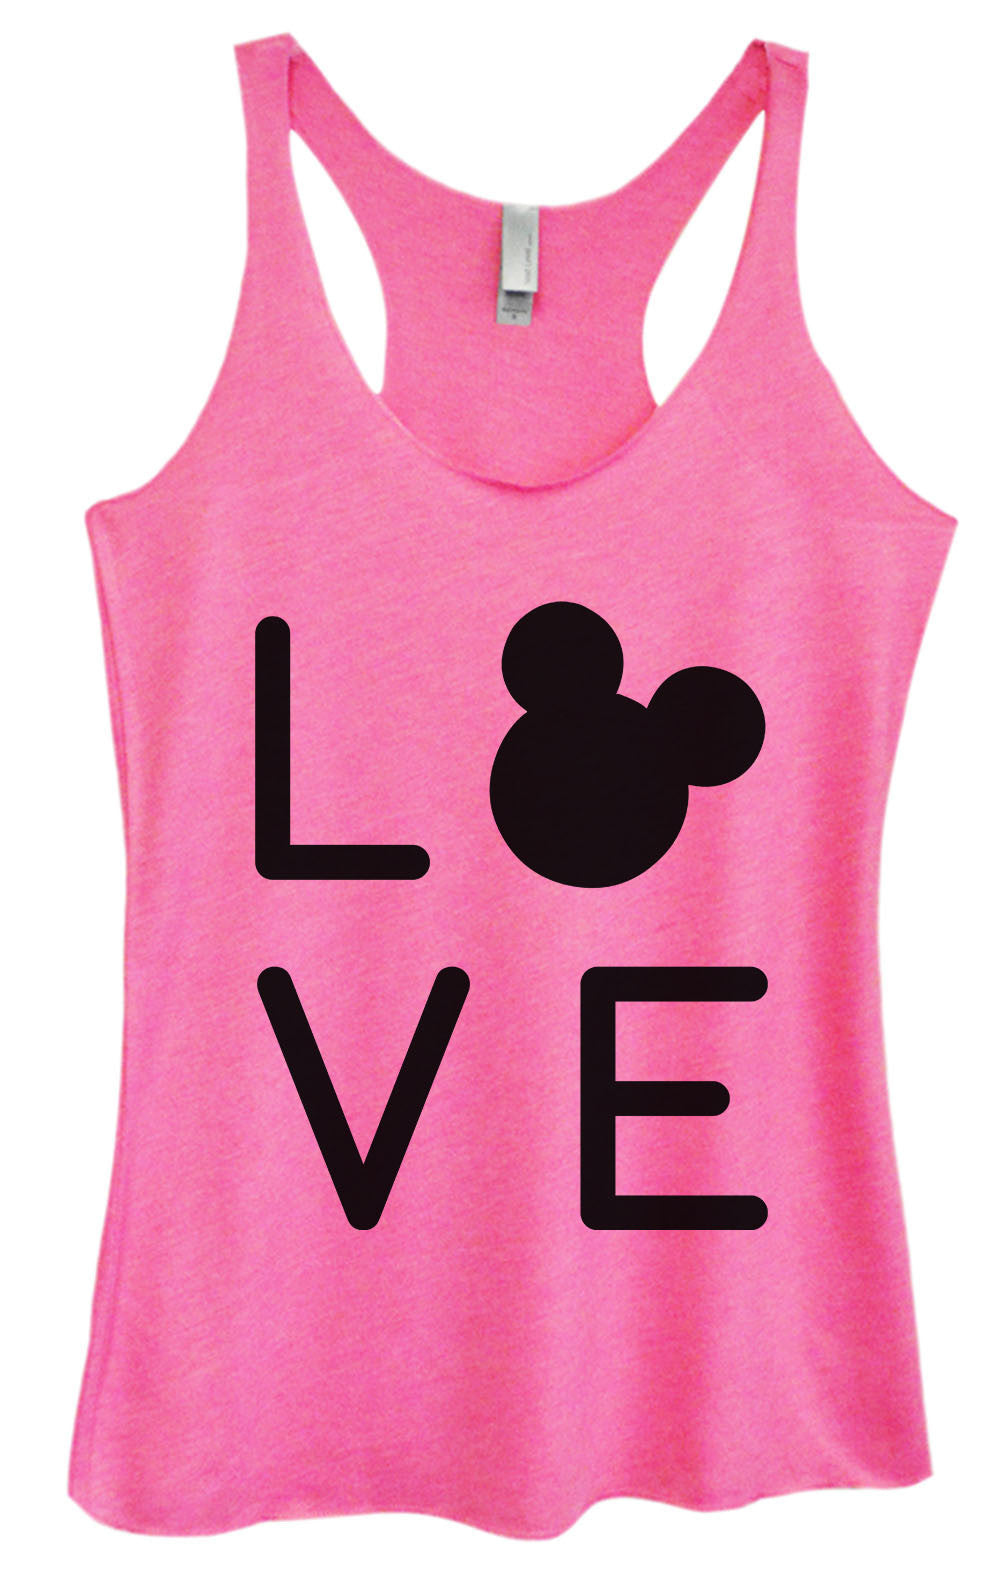 Womens Fashion Triblend Tank Top - Love - Tri-1574 - Funny Shirts Tank Tops Burnouts and Triblends  - 4